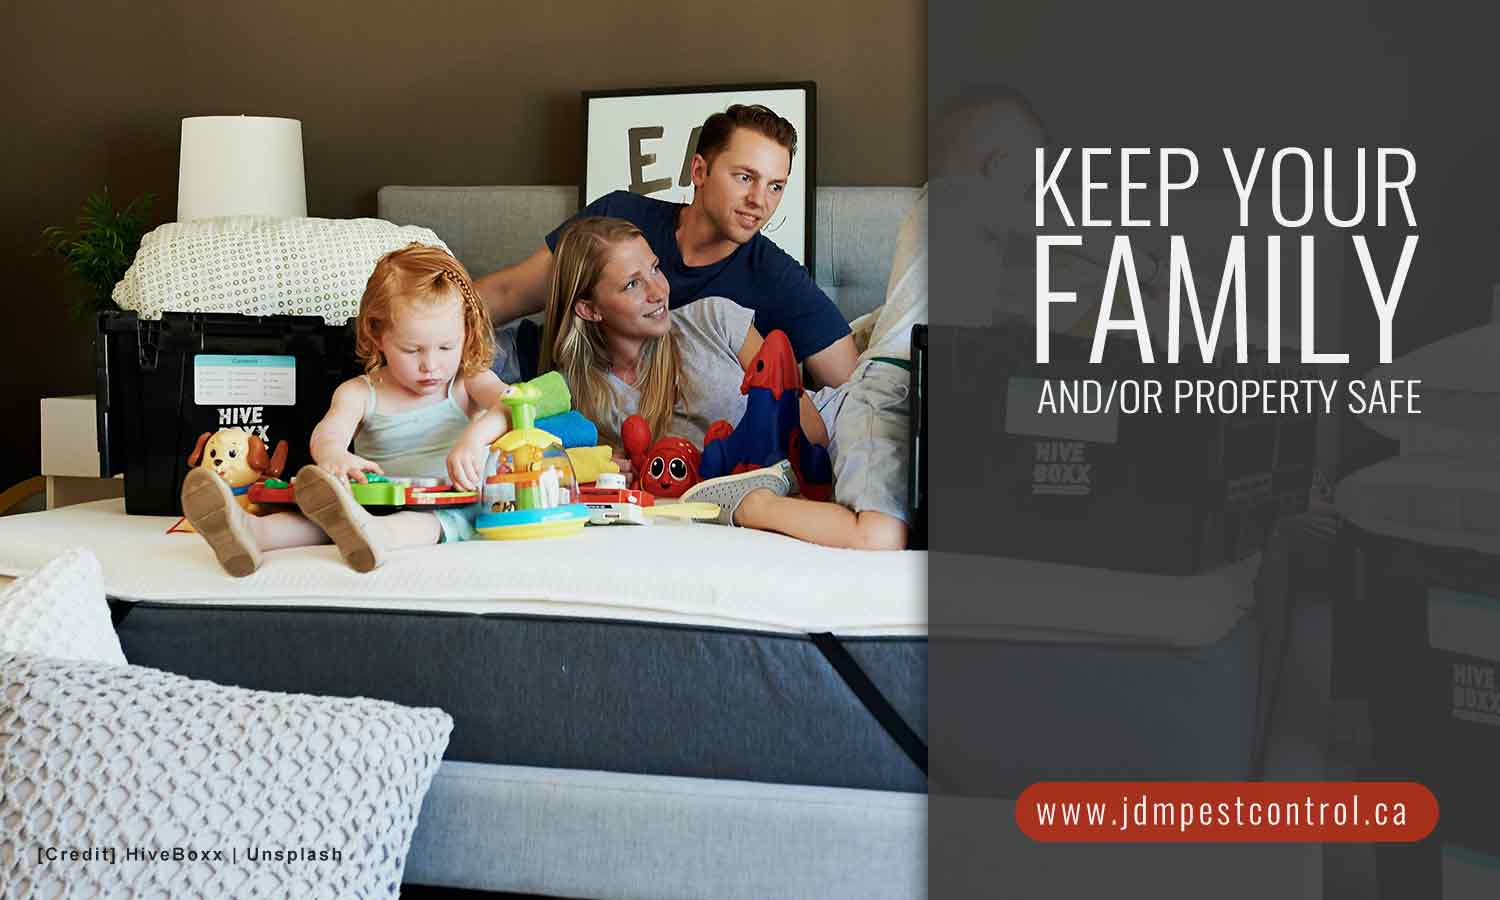 Keep your family and/or property safe